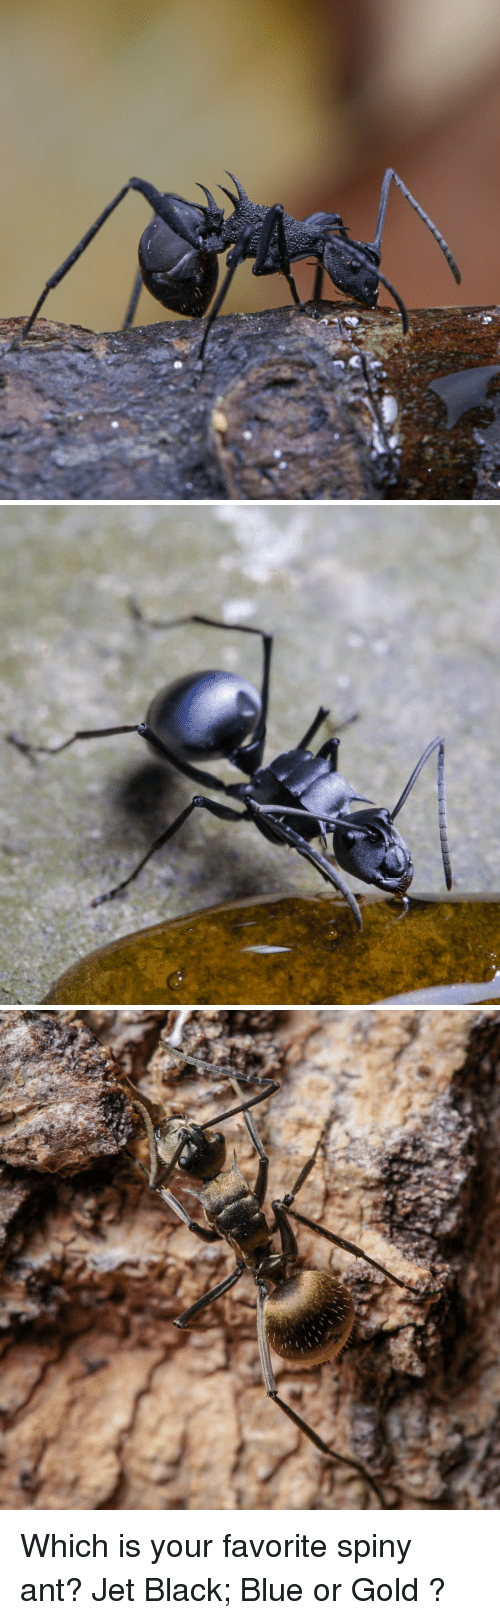 Black, Blue, and Gold: Which is your favorite spiny ant? Jet Black; Blue or Gold ?